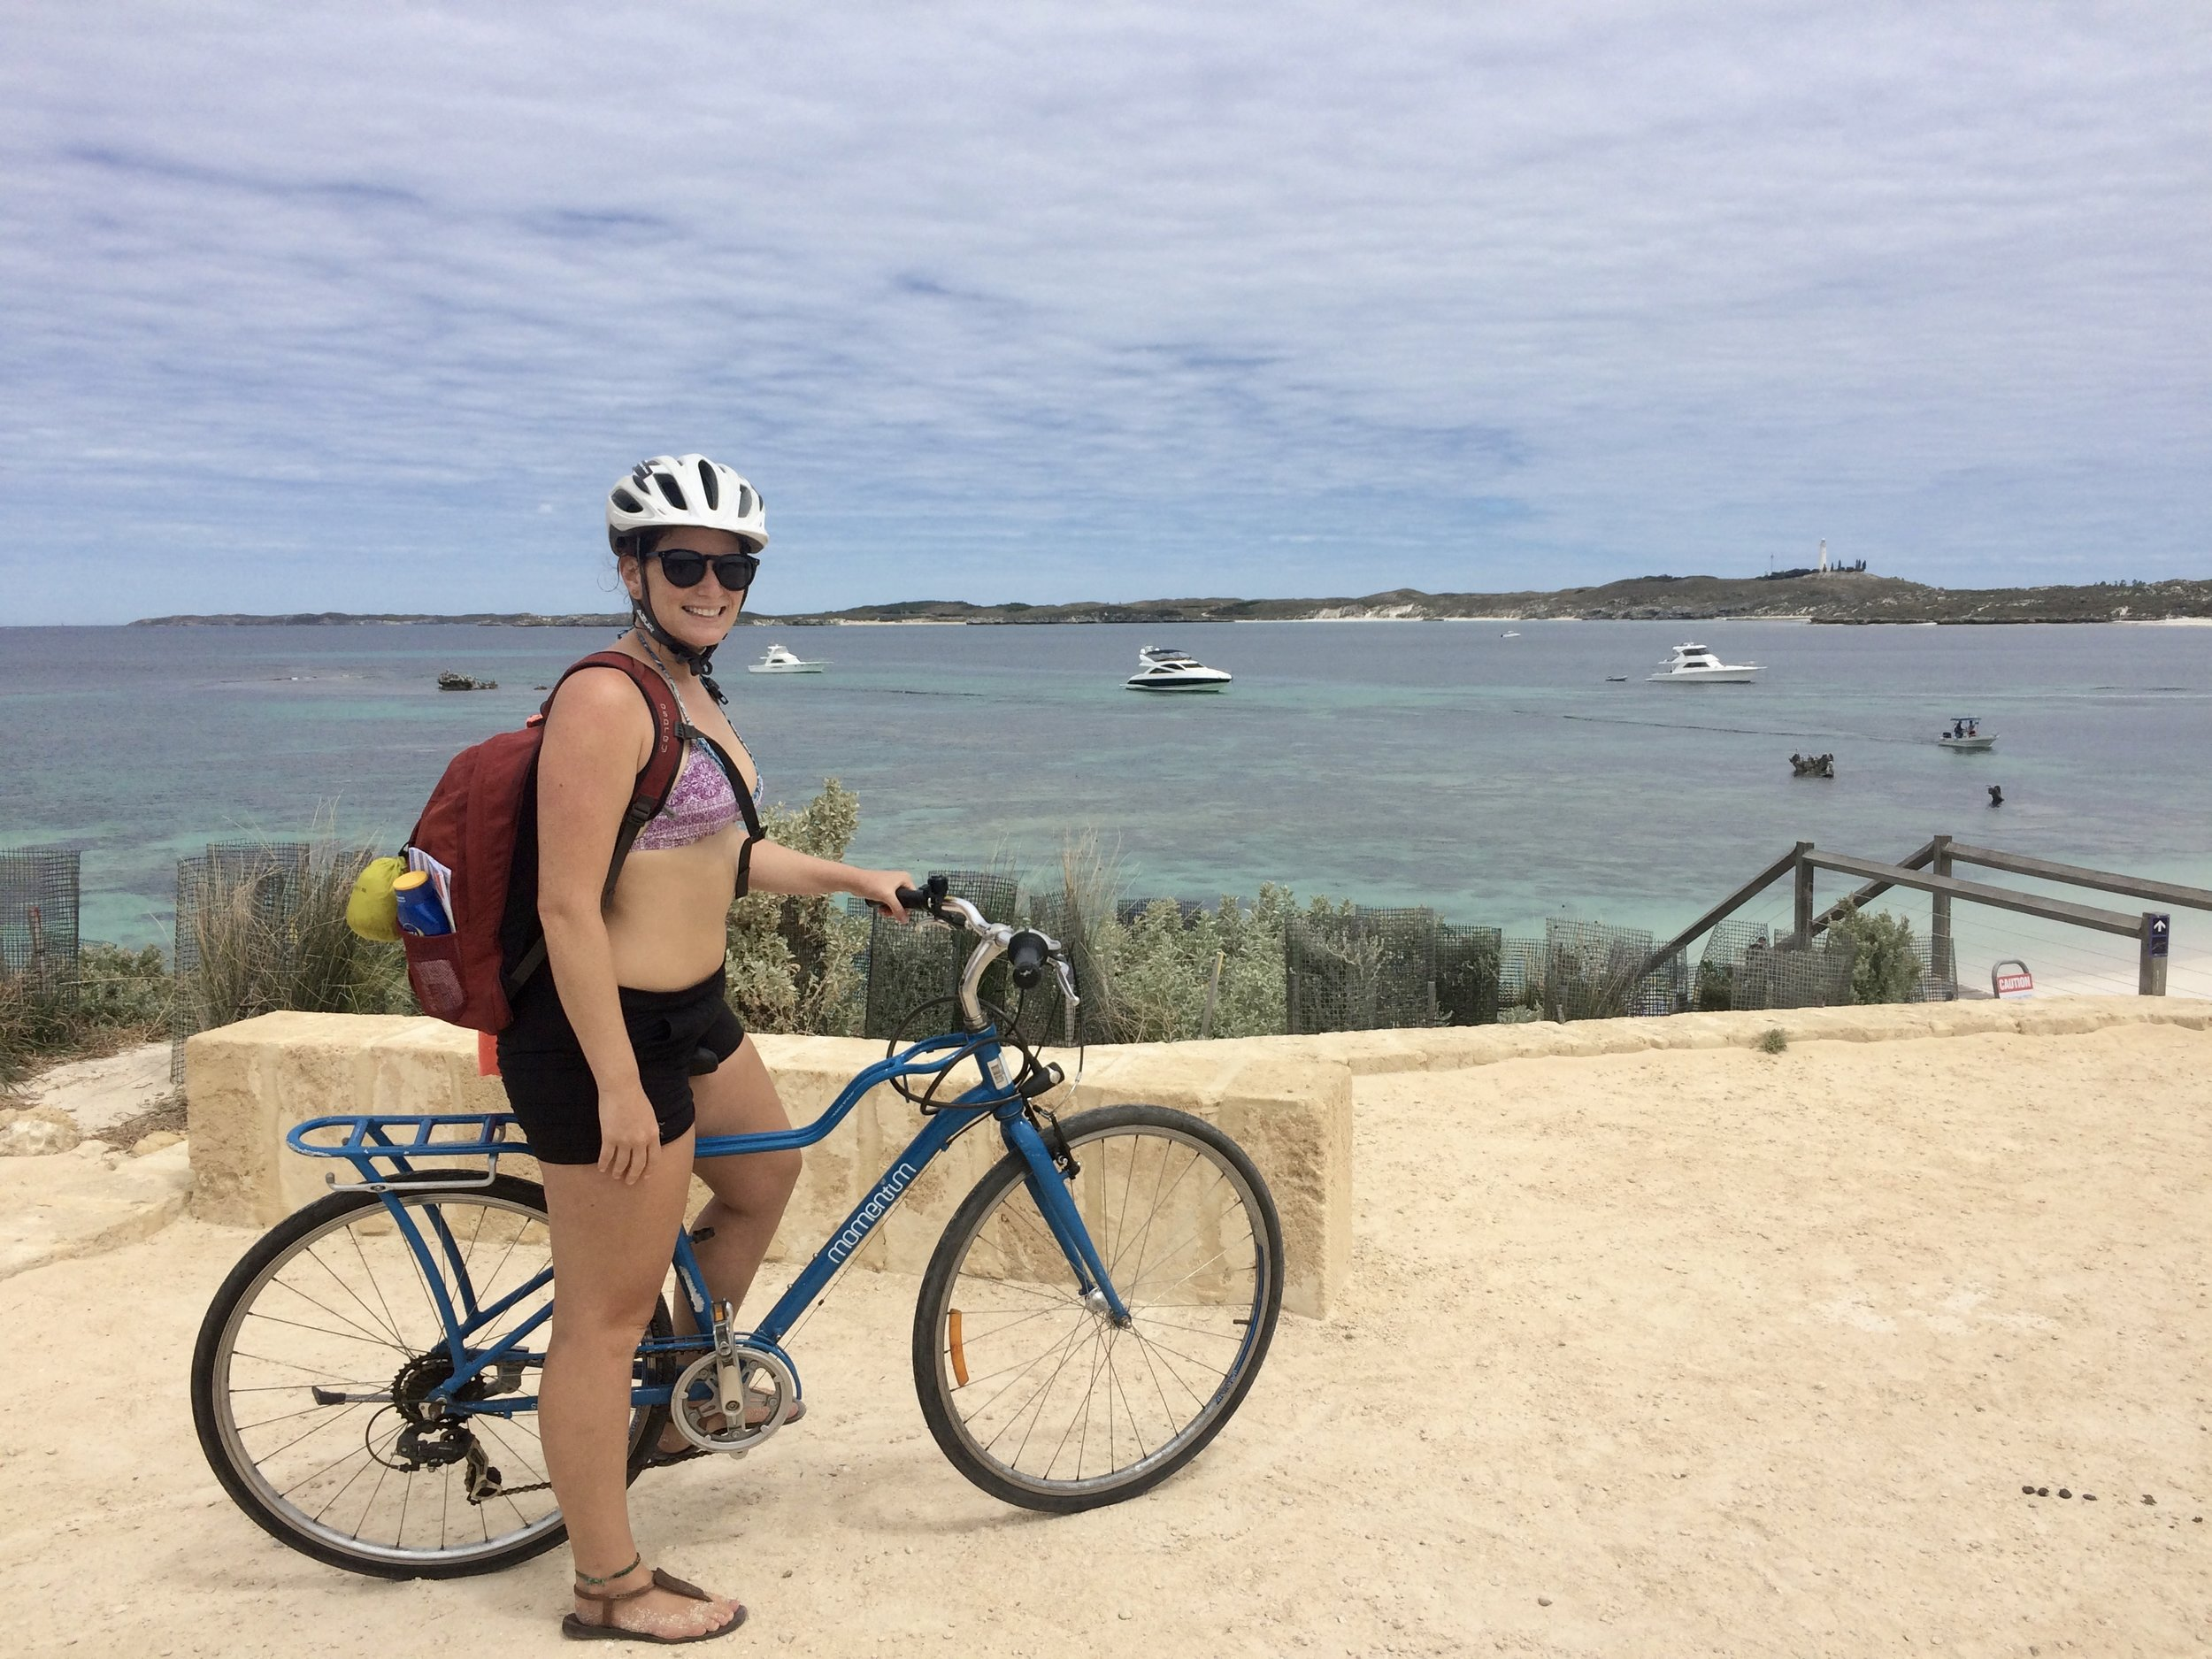 Exploring Rottnest on bicycle - an active, busy day!